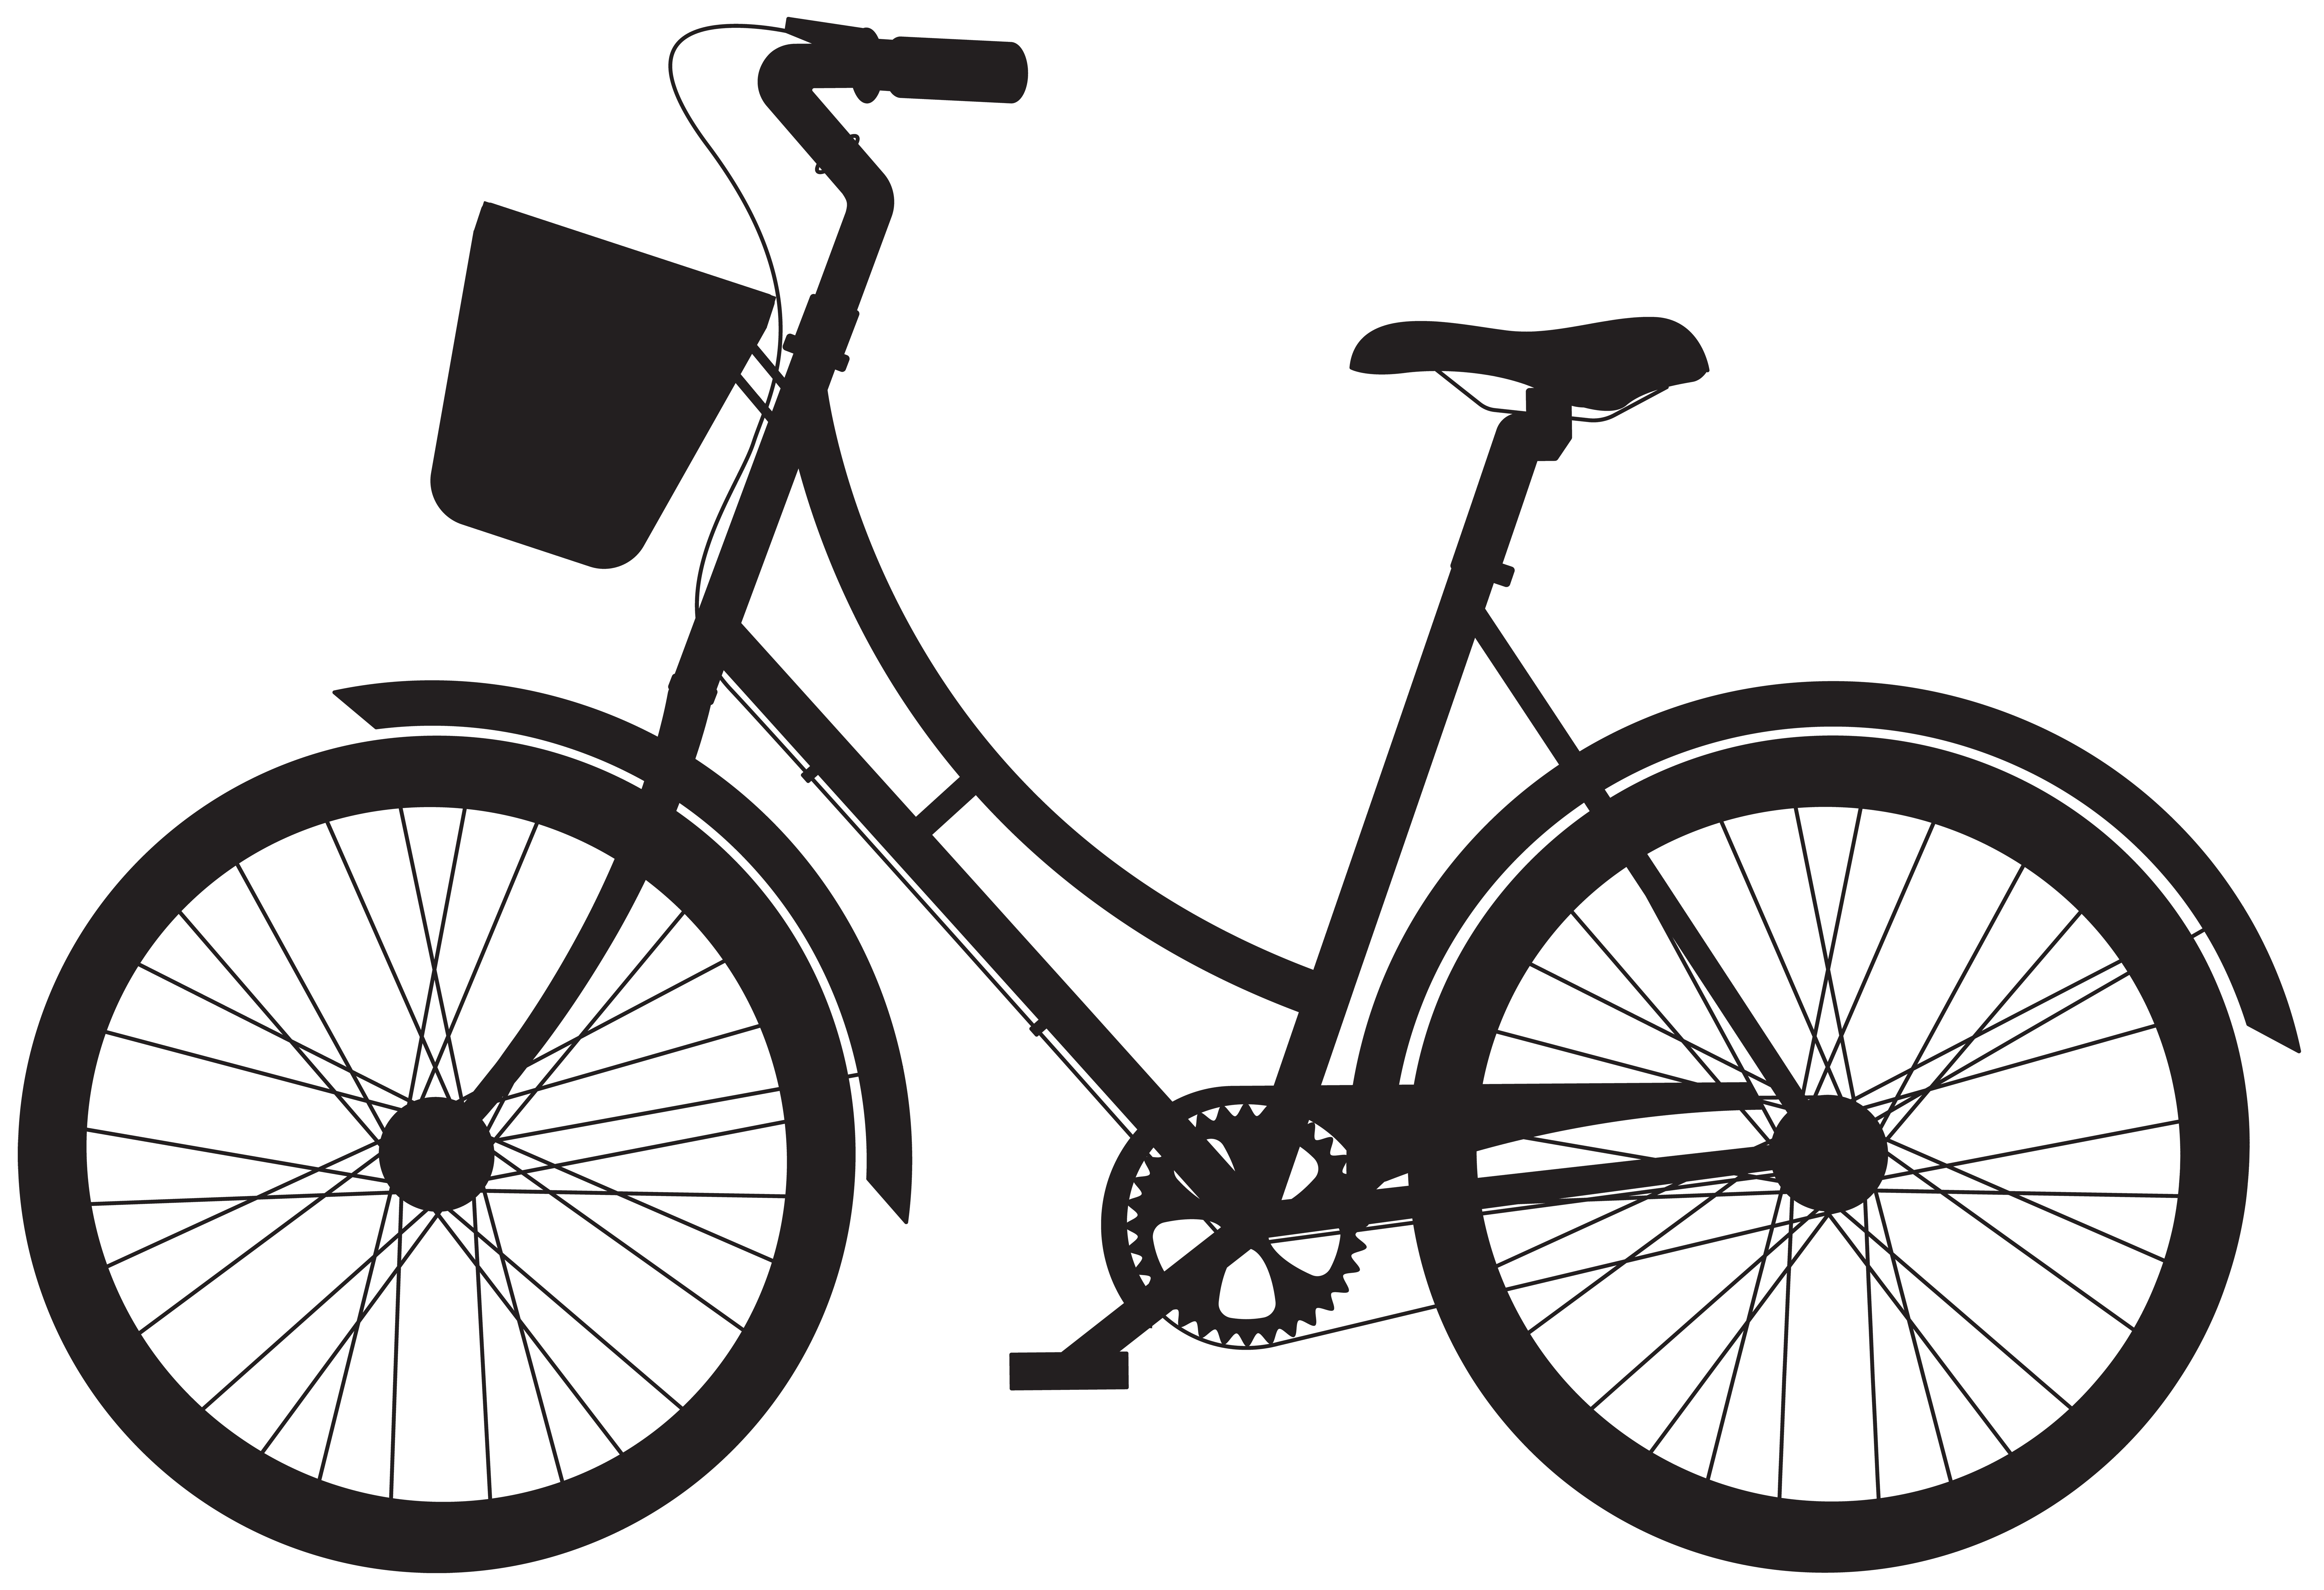 Bicycle art png. With basket silhouette clip